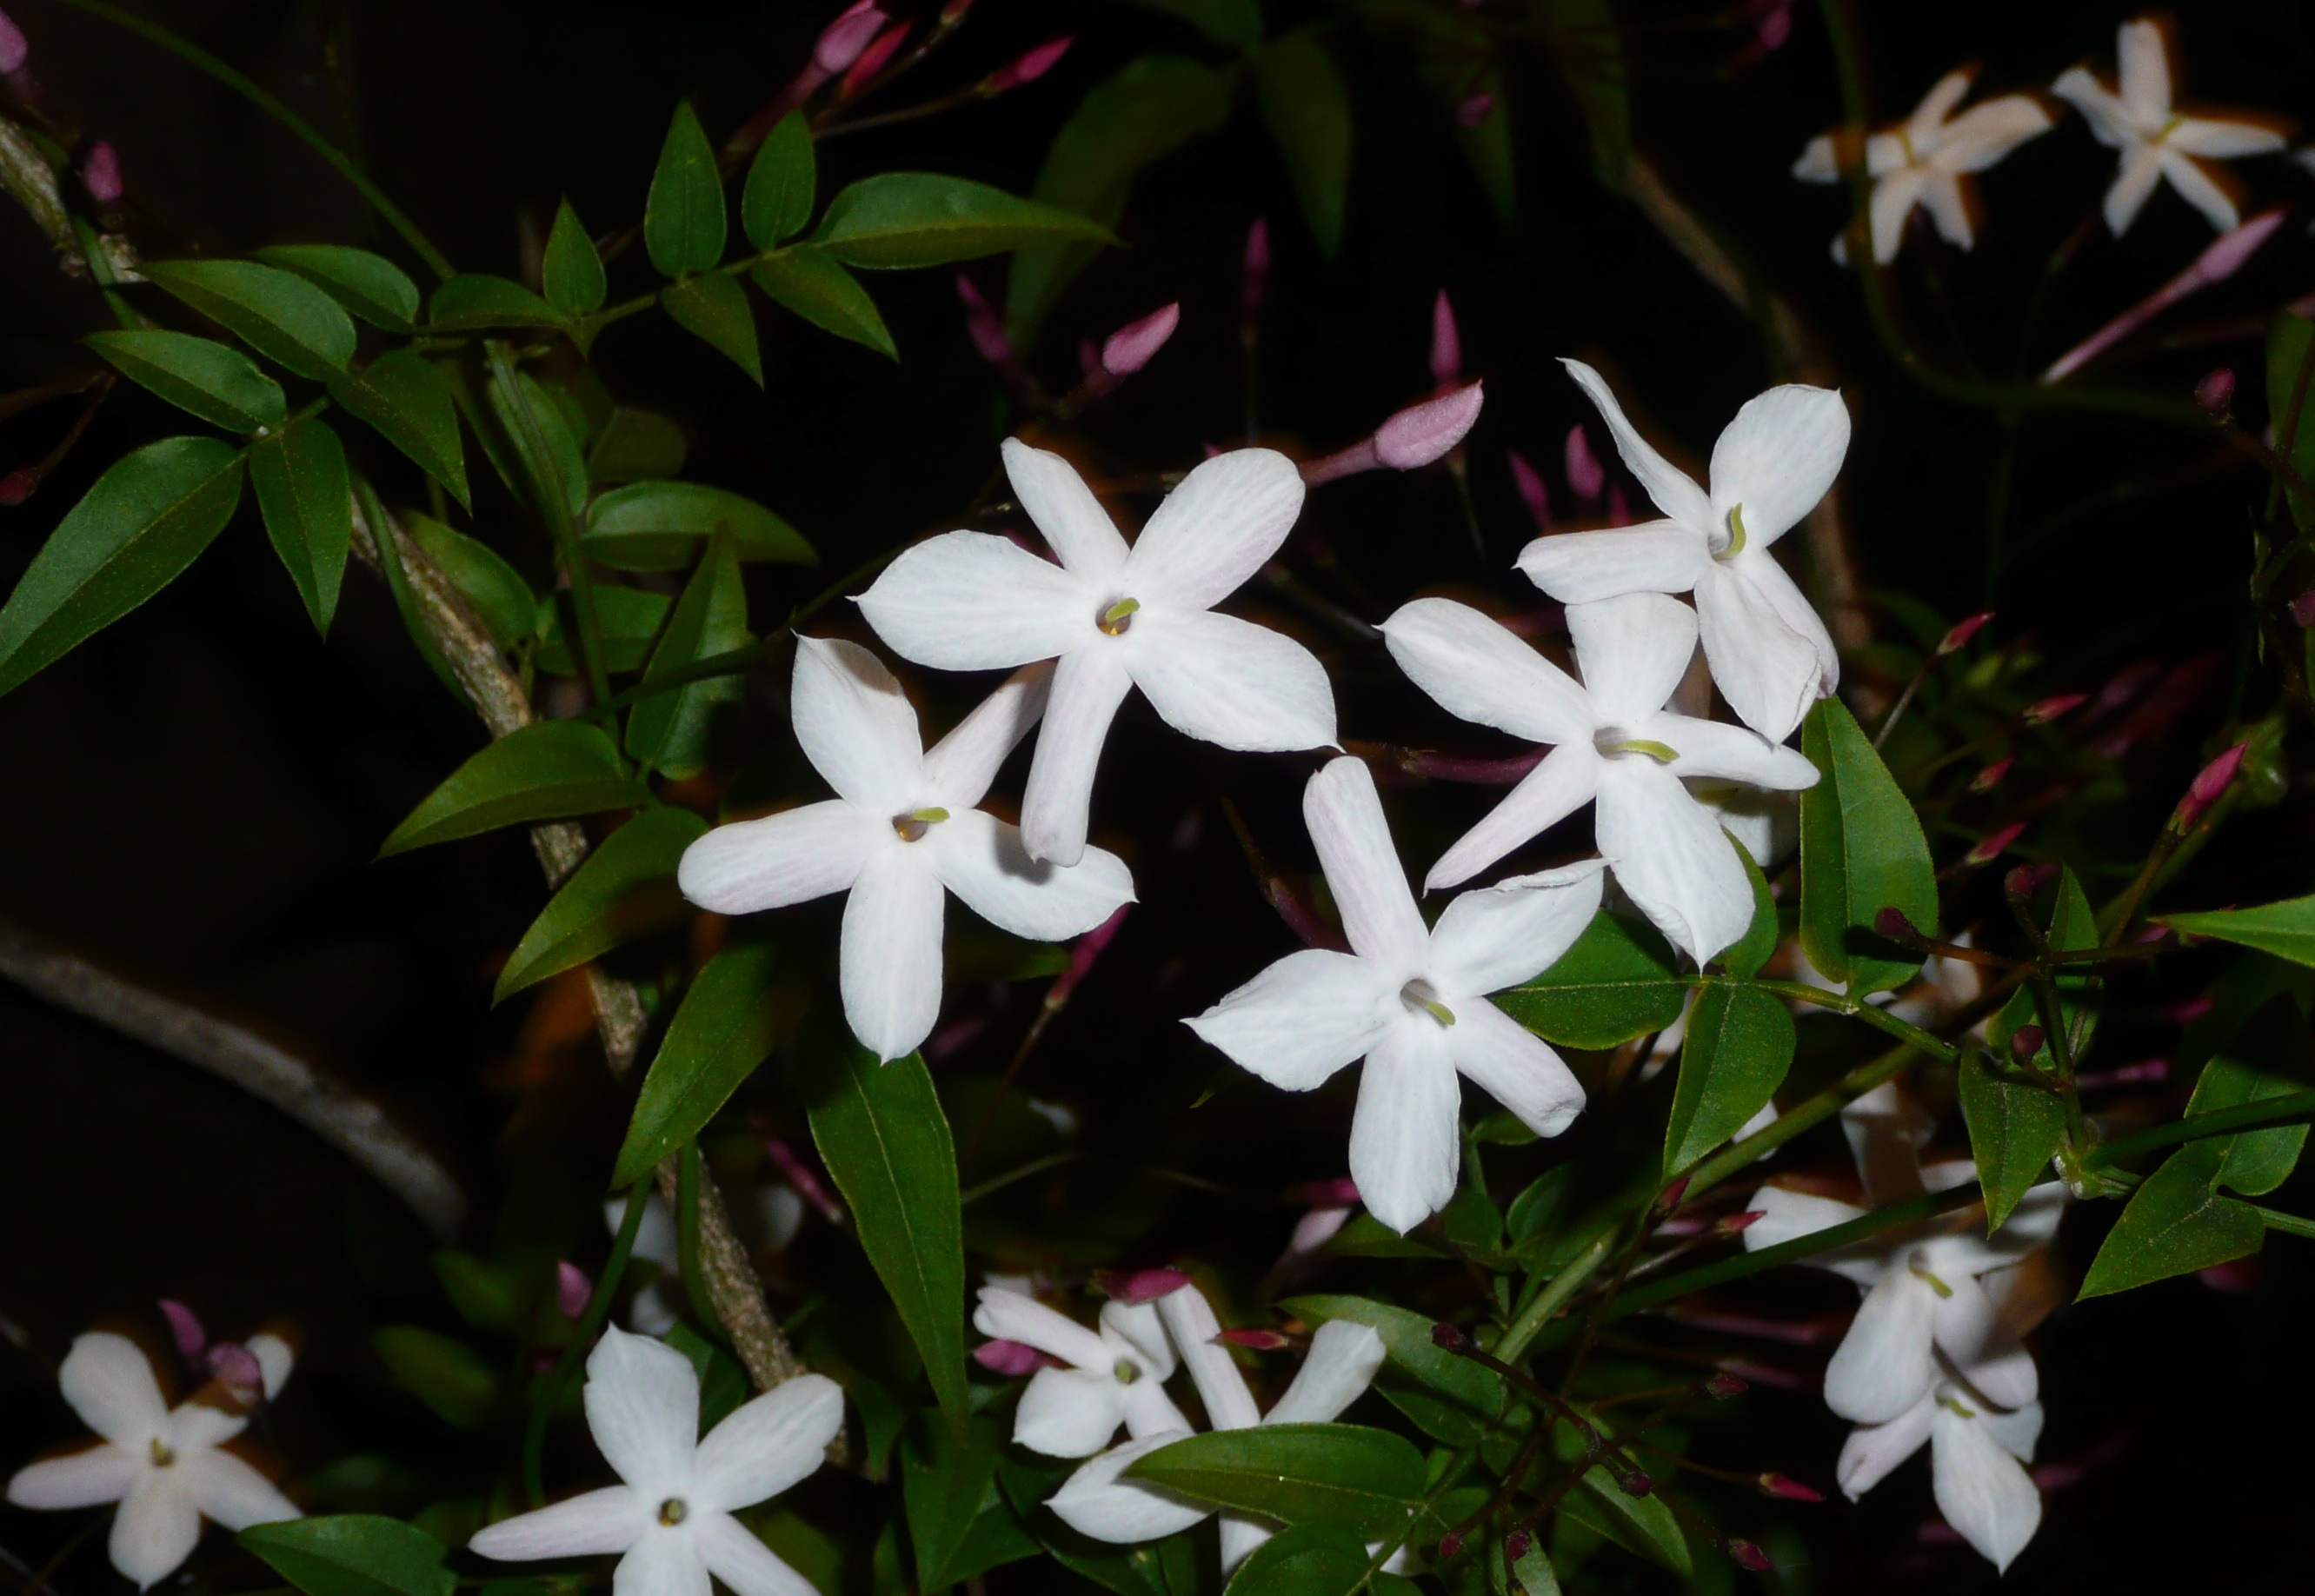 Drift off and smell the jasmine privilegeofparentings blog night blooming jasmine izmirmasajfo Image collections